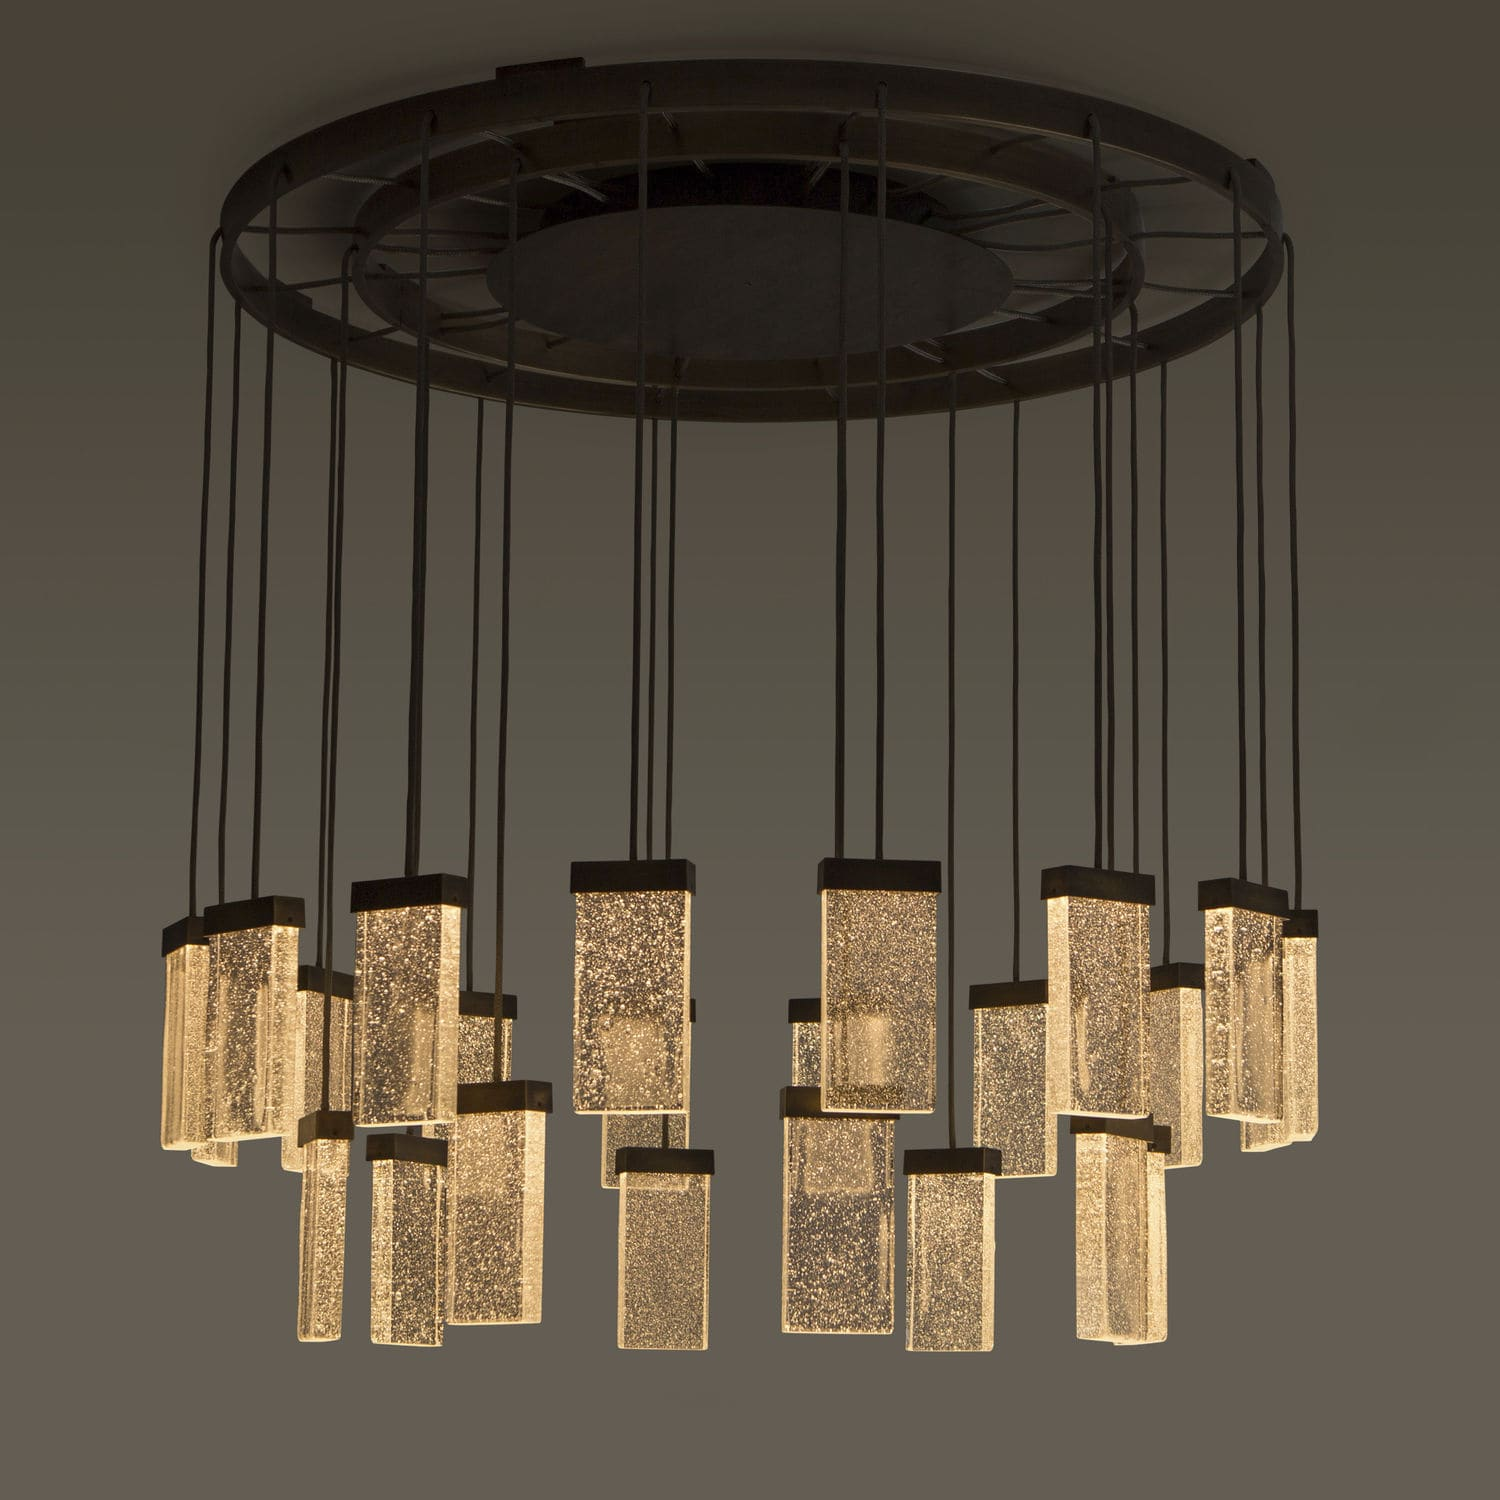 Image of: Contemporary Chandelier 24 Grand Cru Chandelier Massifcentral Glass Aluminum Led